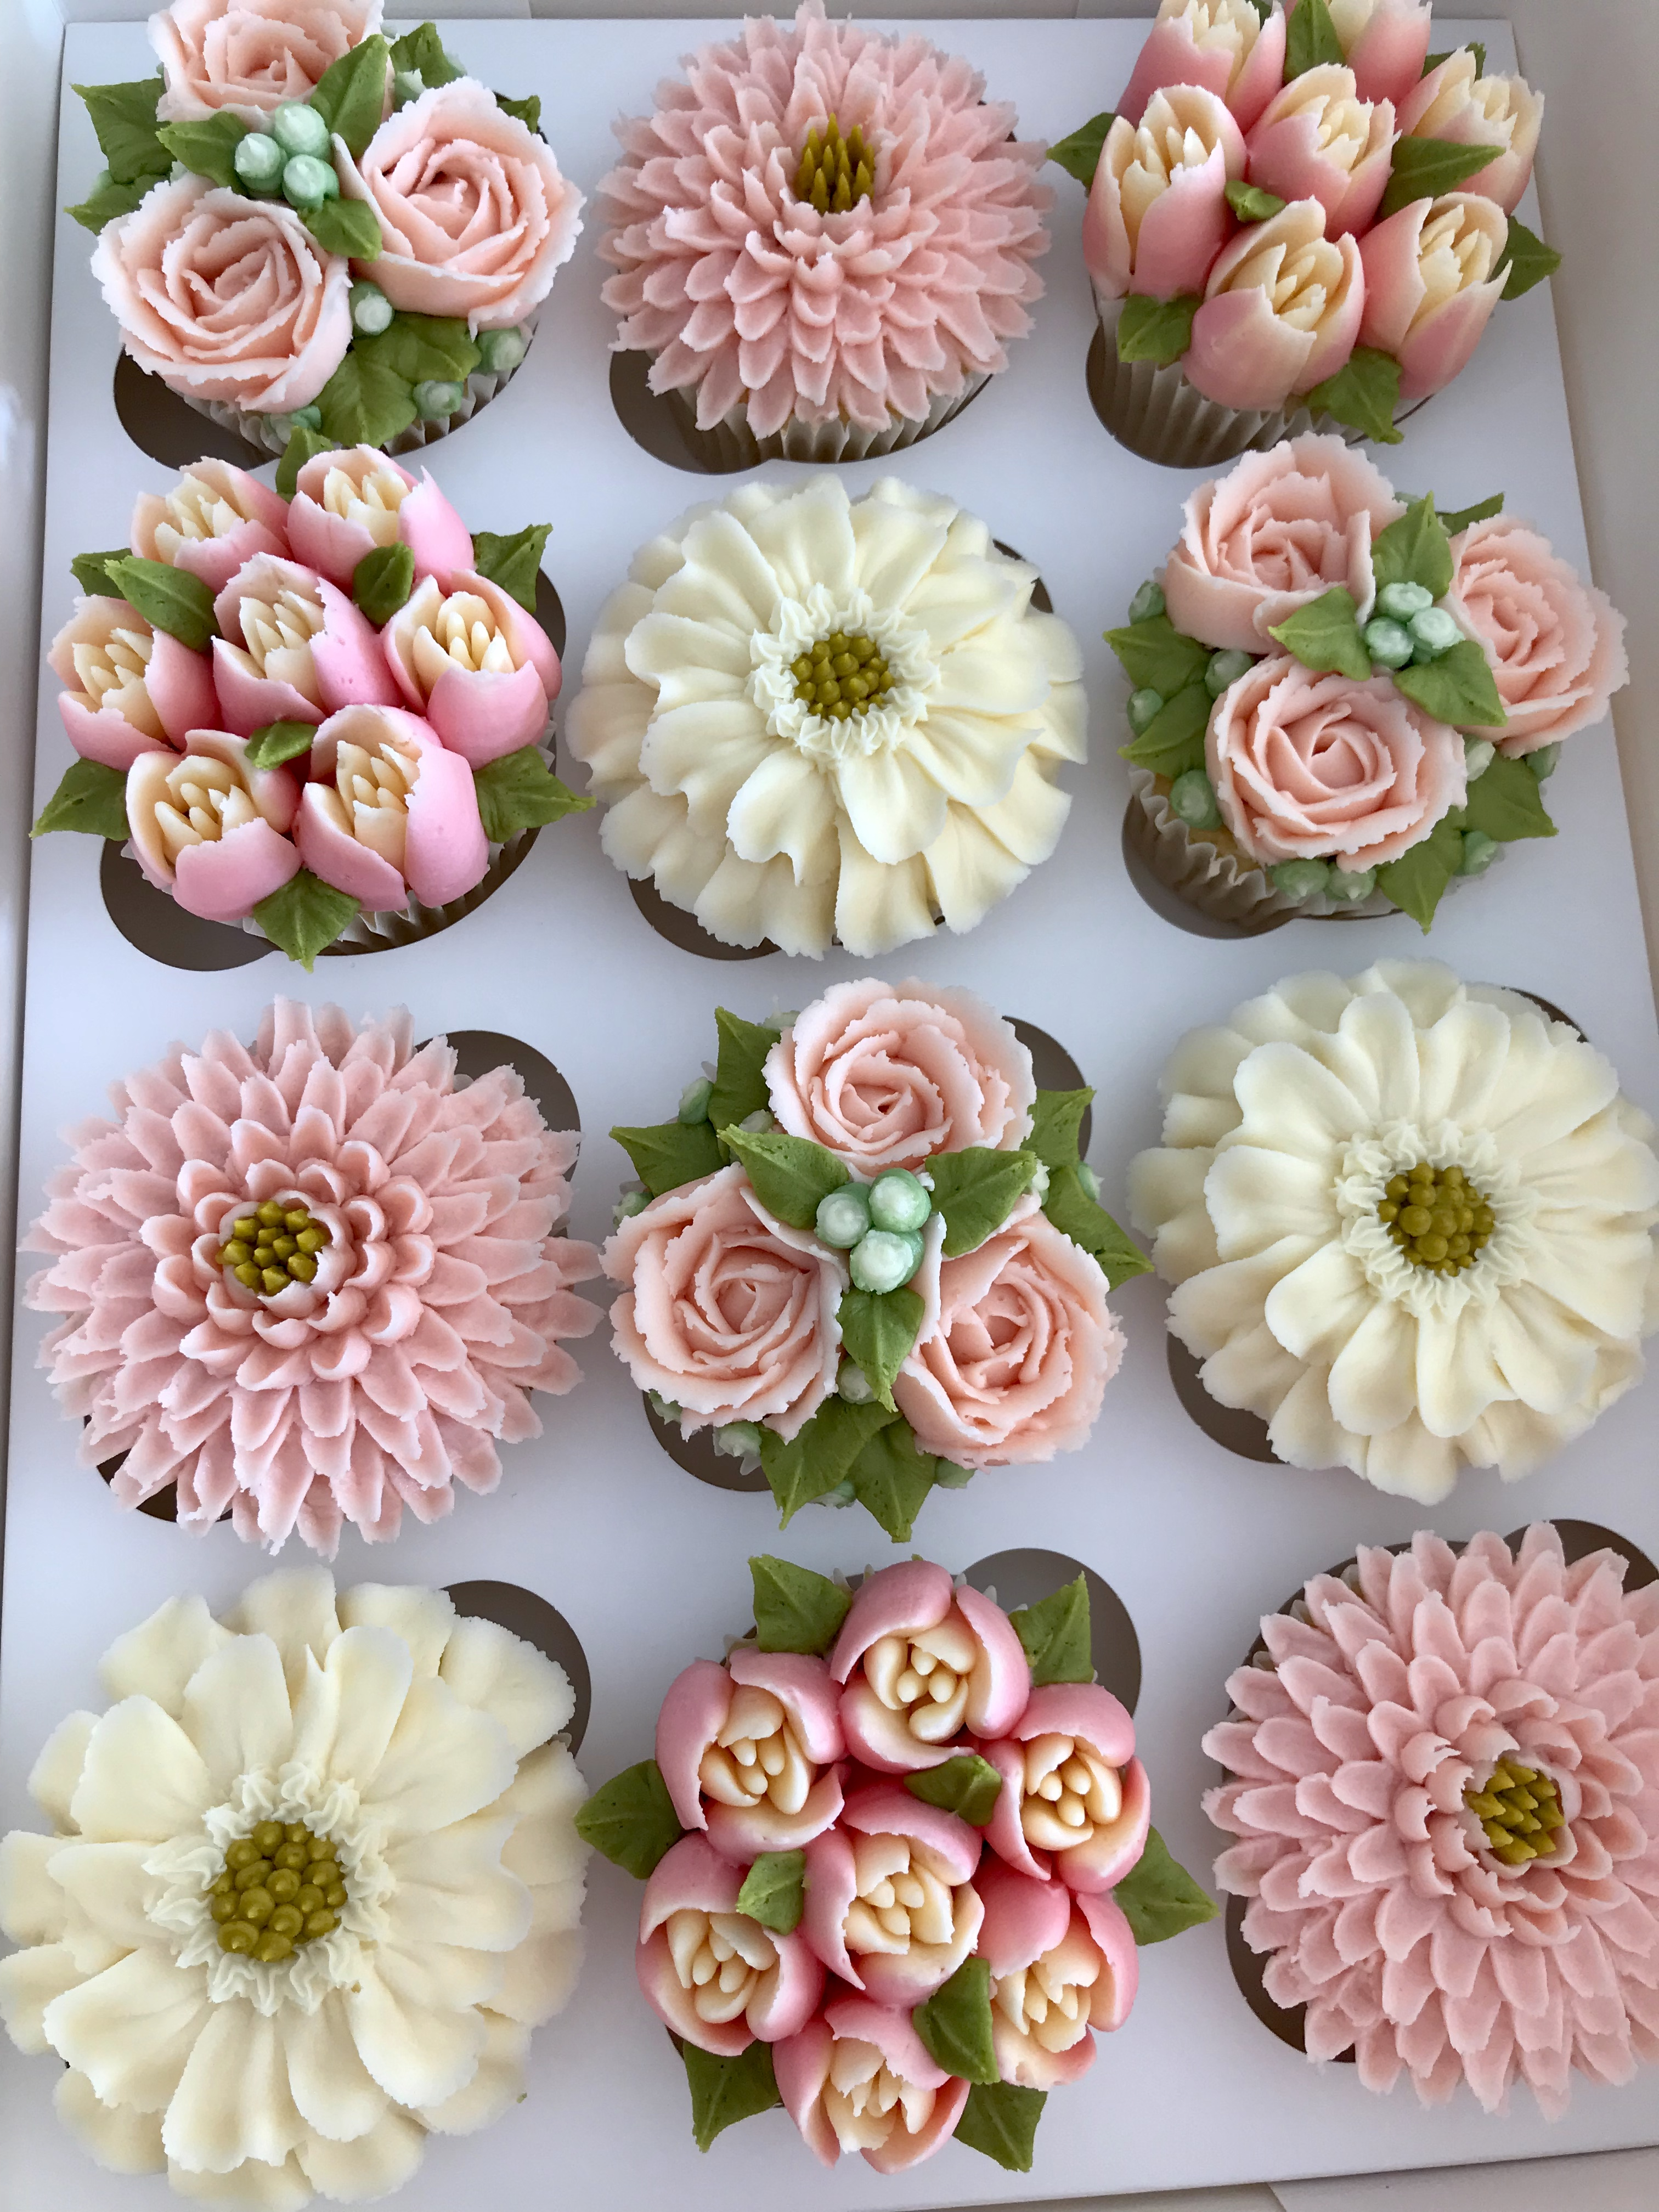 Kerry S Bouqcakes Gallery Boxed Floral Cupcakes